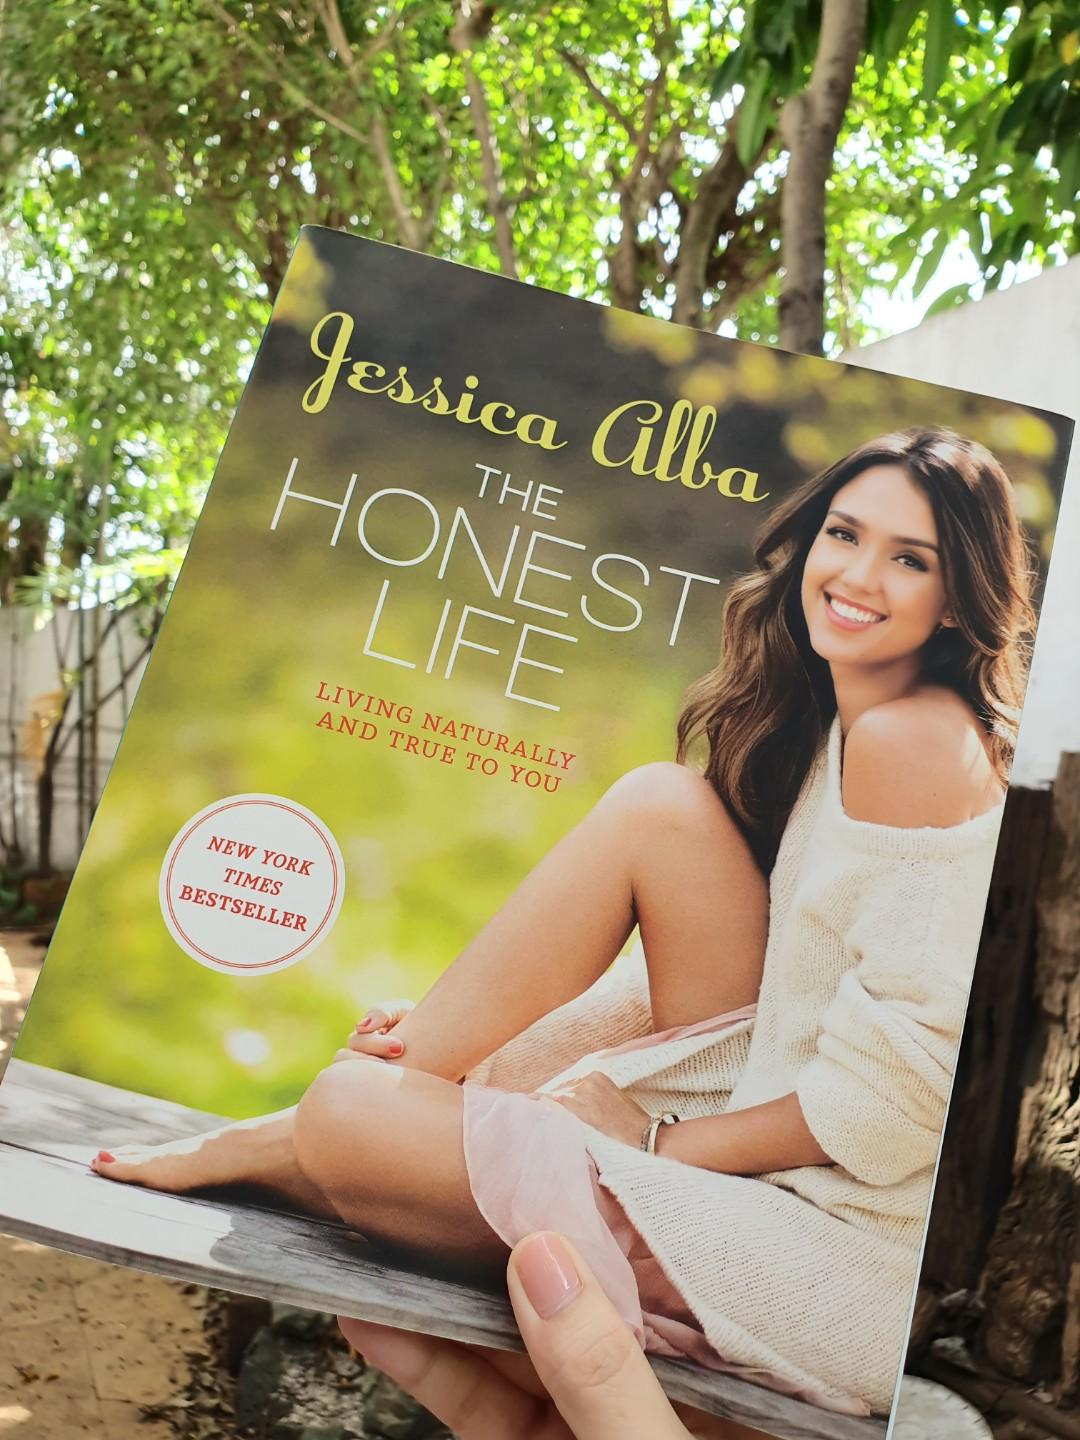 Celebrity book bundle: Jessica Alba's The Honest life and Gwyneth Paltrow's My Father's Daughter (Hardbound)